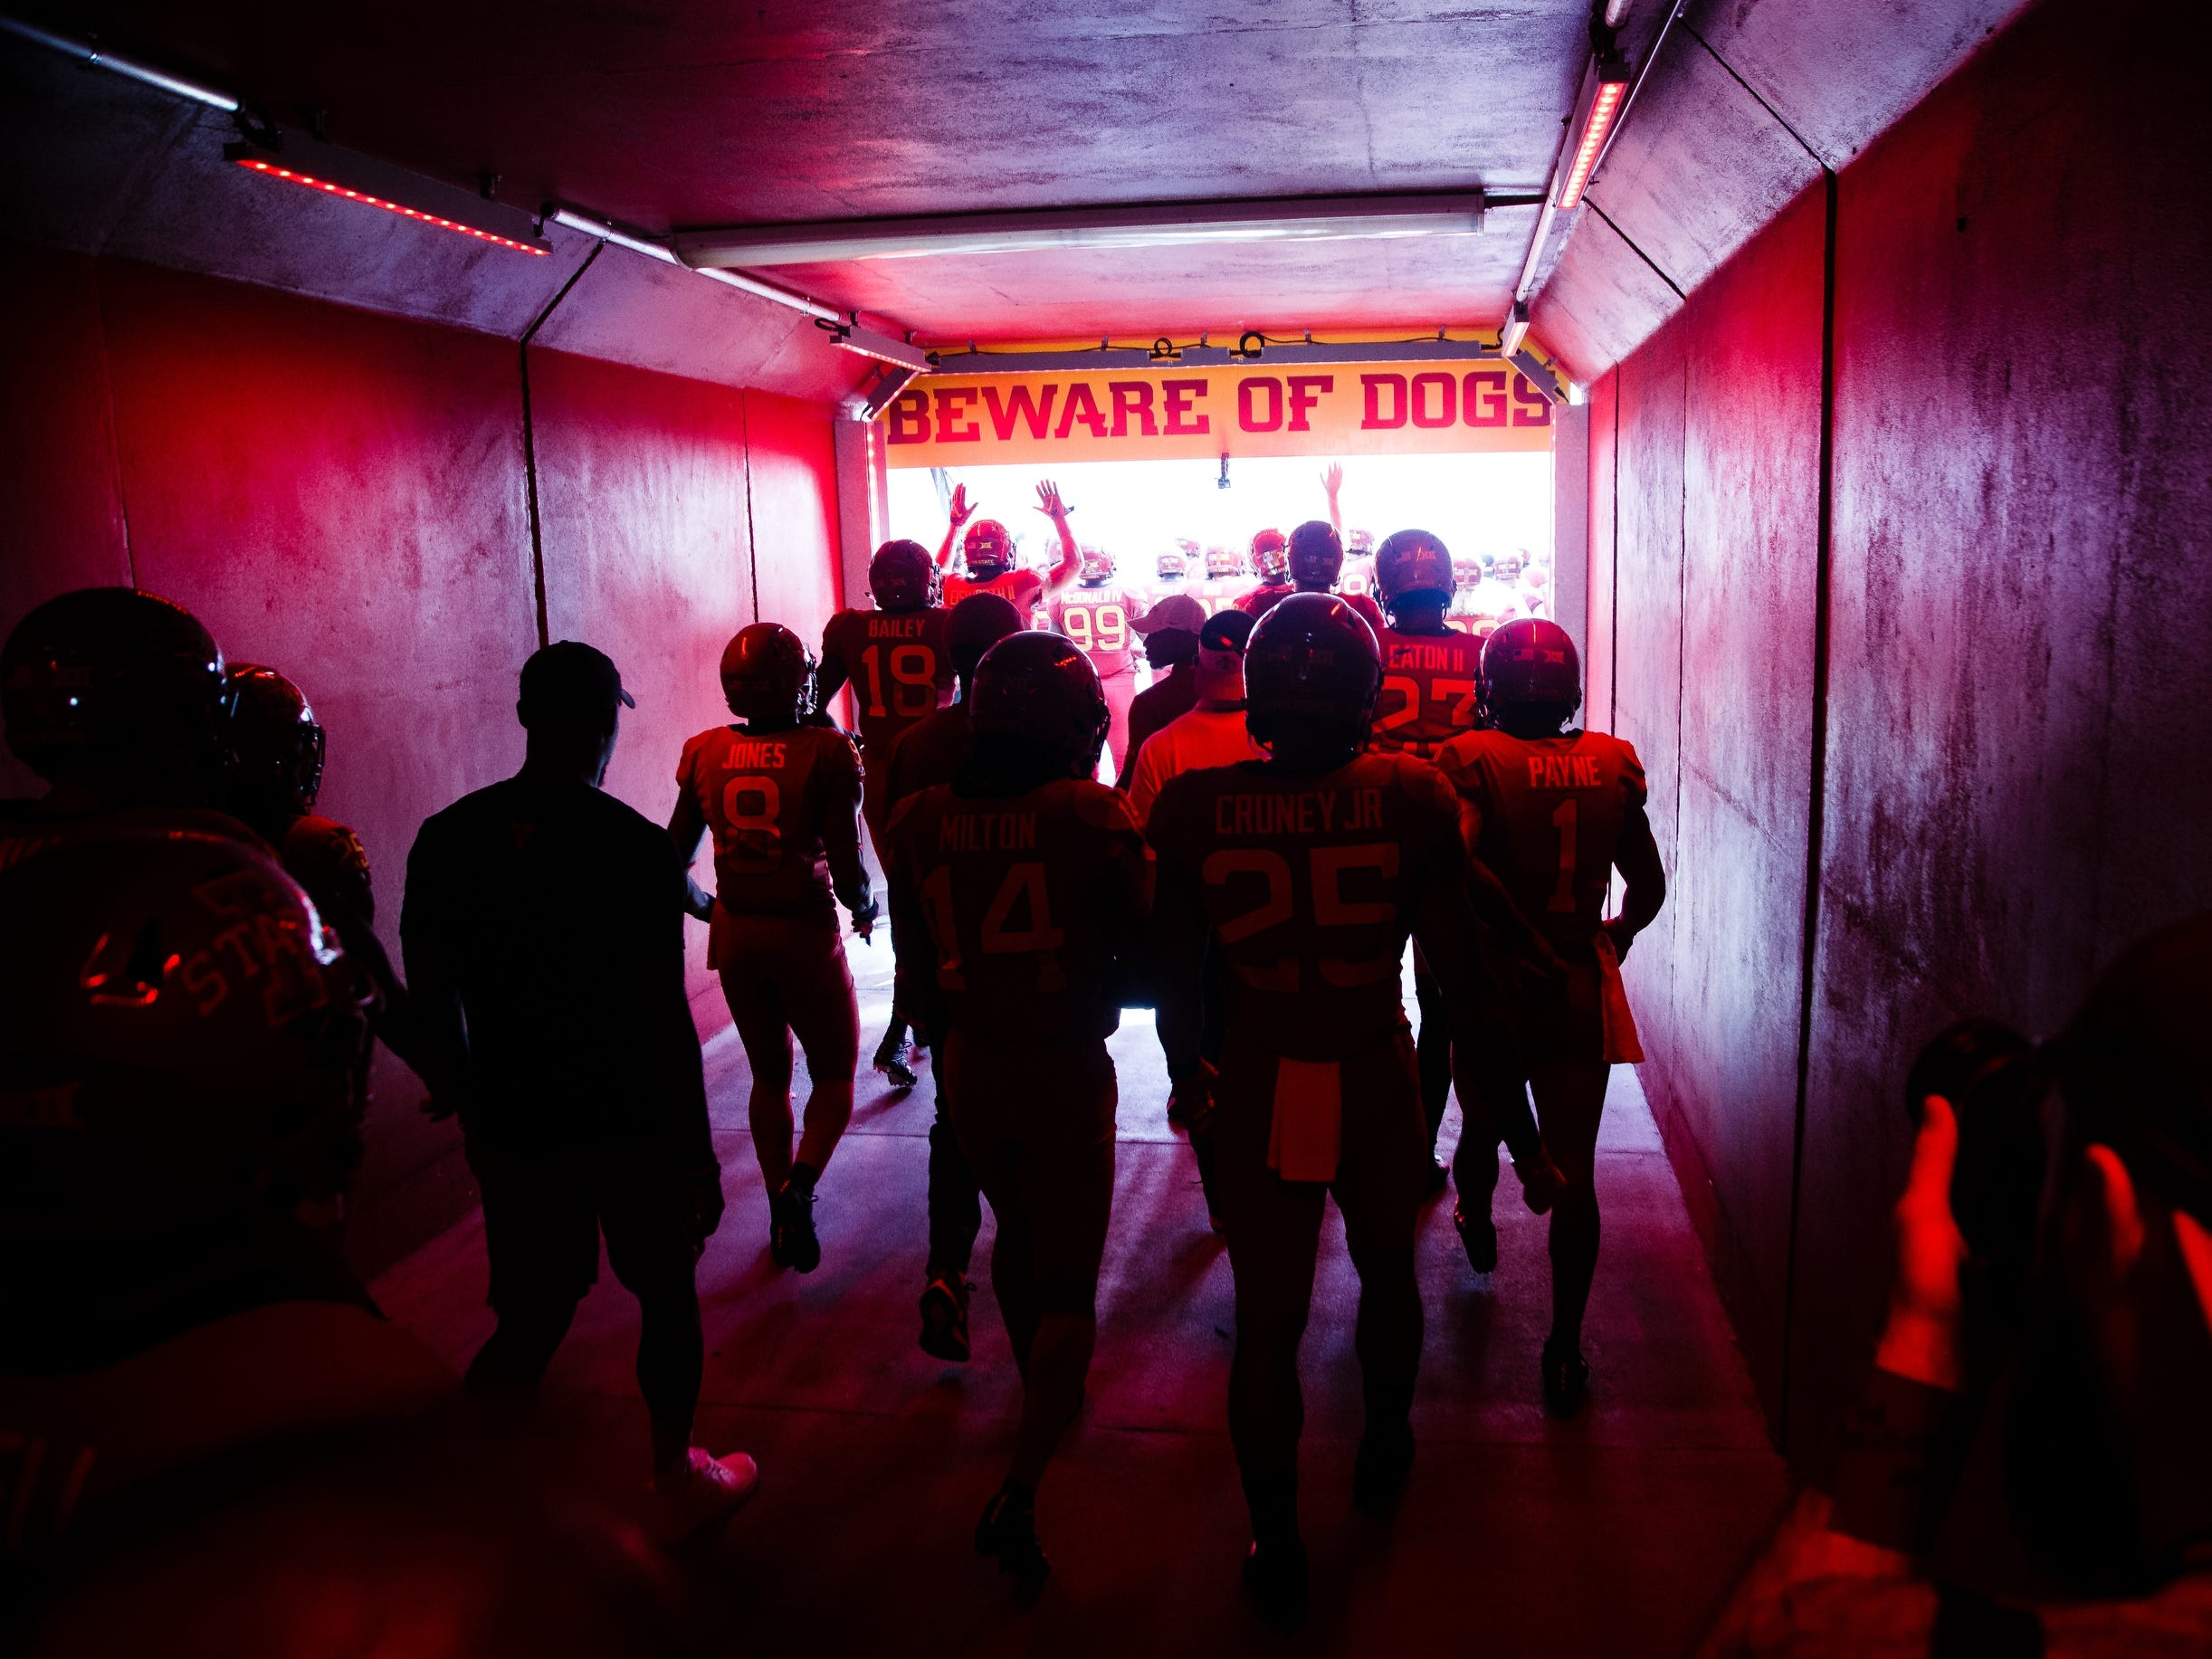 The Iowa State football team walks out of the tunnel and onto the field before taking on Oklahoma at Jack Trice Stadium on Saturday, Sept. 15, 2018 in Ames. Oklahoma would go on to win 37-27.